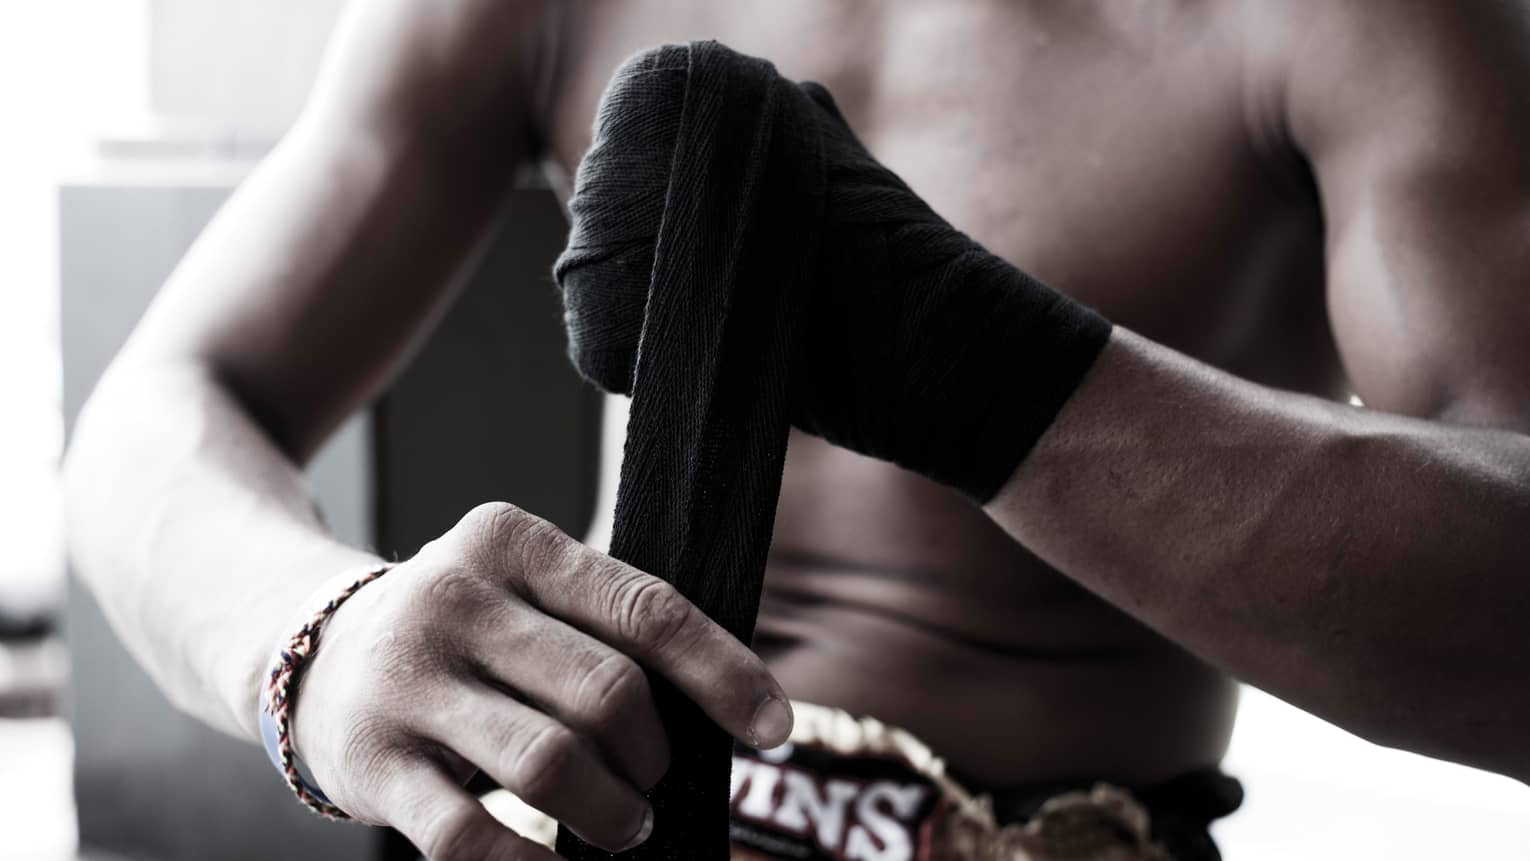 Close-up of Muay Thai boxer wrapping black boxing tape around hands